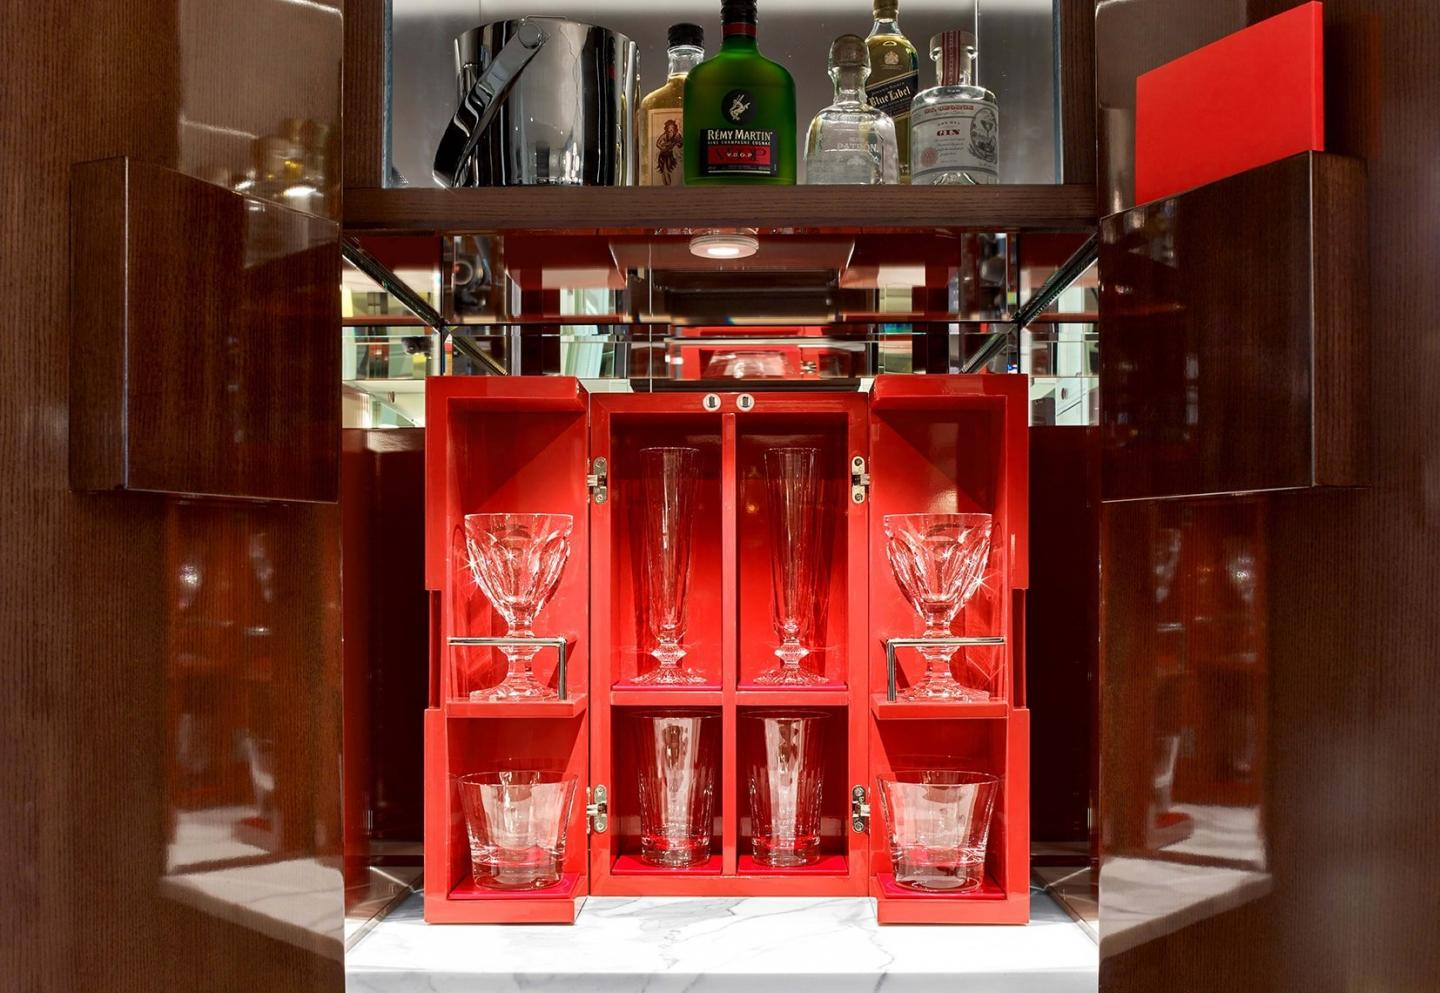 baccarat_hotel_nyc_march_2015_187-min.jpg